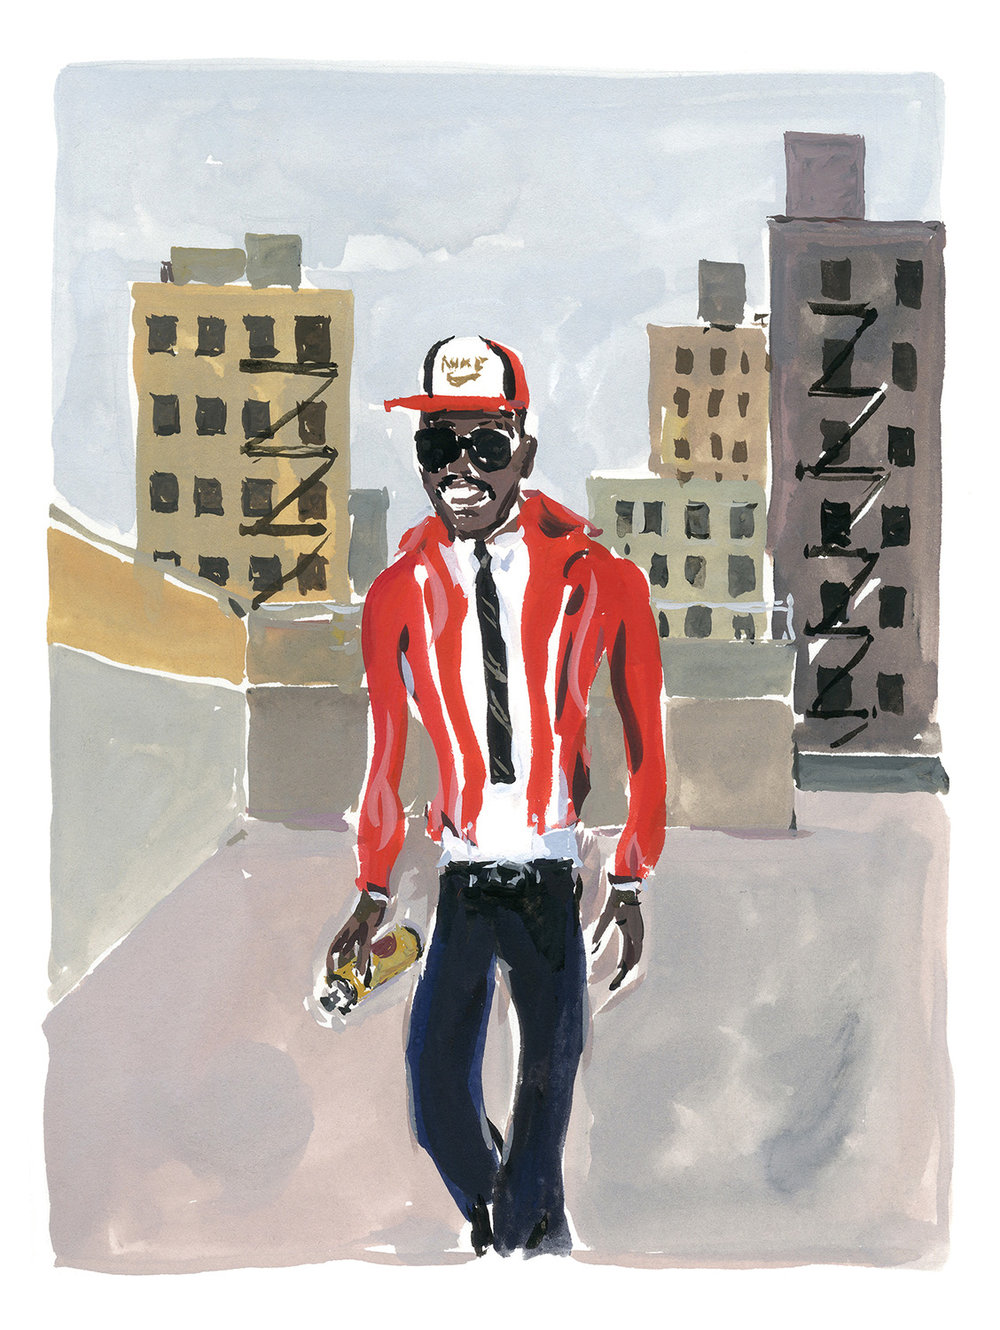 Fab 5 Freddy Hennessy: A Toast To The World's Preeminent Spirit. Rizzoli New York